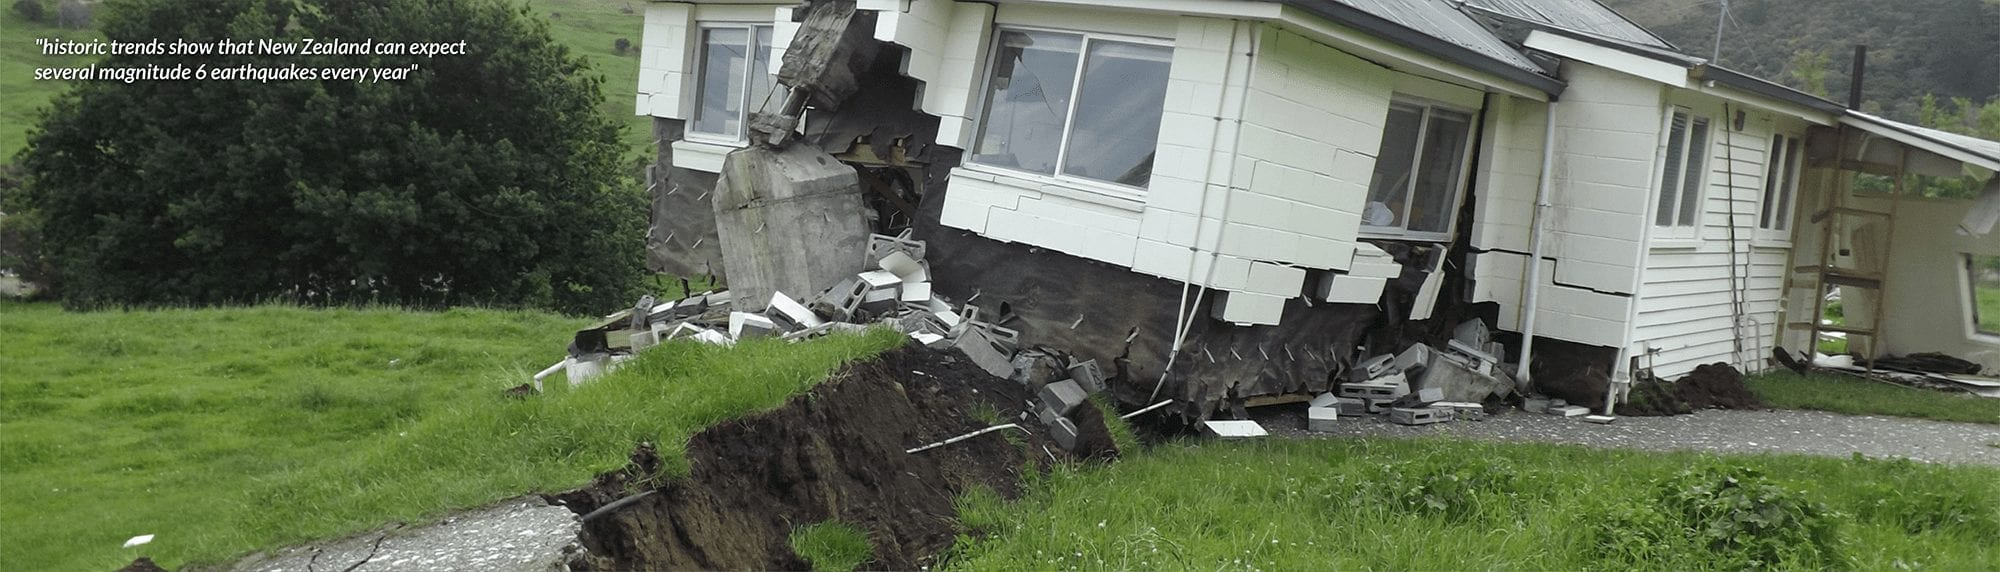 historic trends show that New Zealand can expect several magnitude 6 earthquakes every year